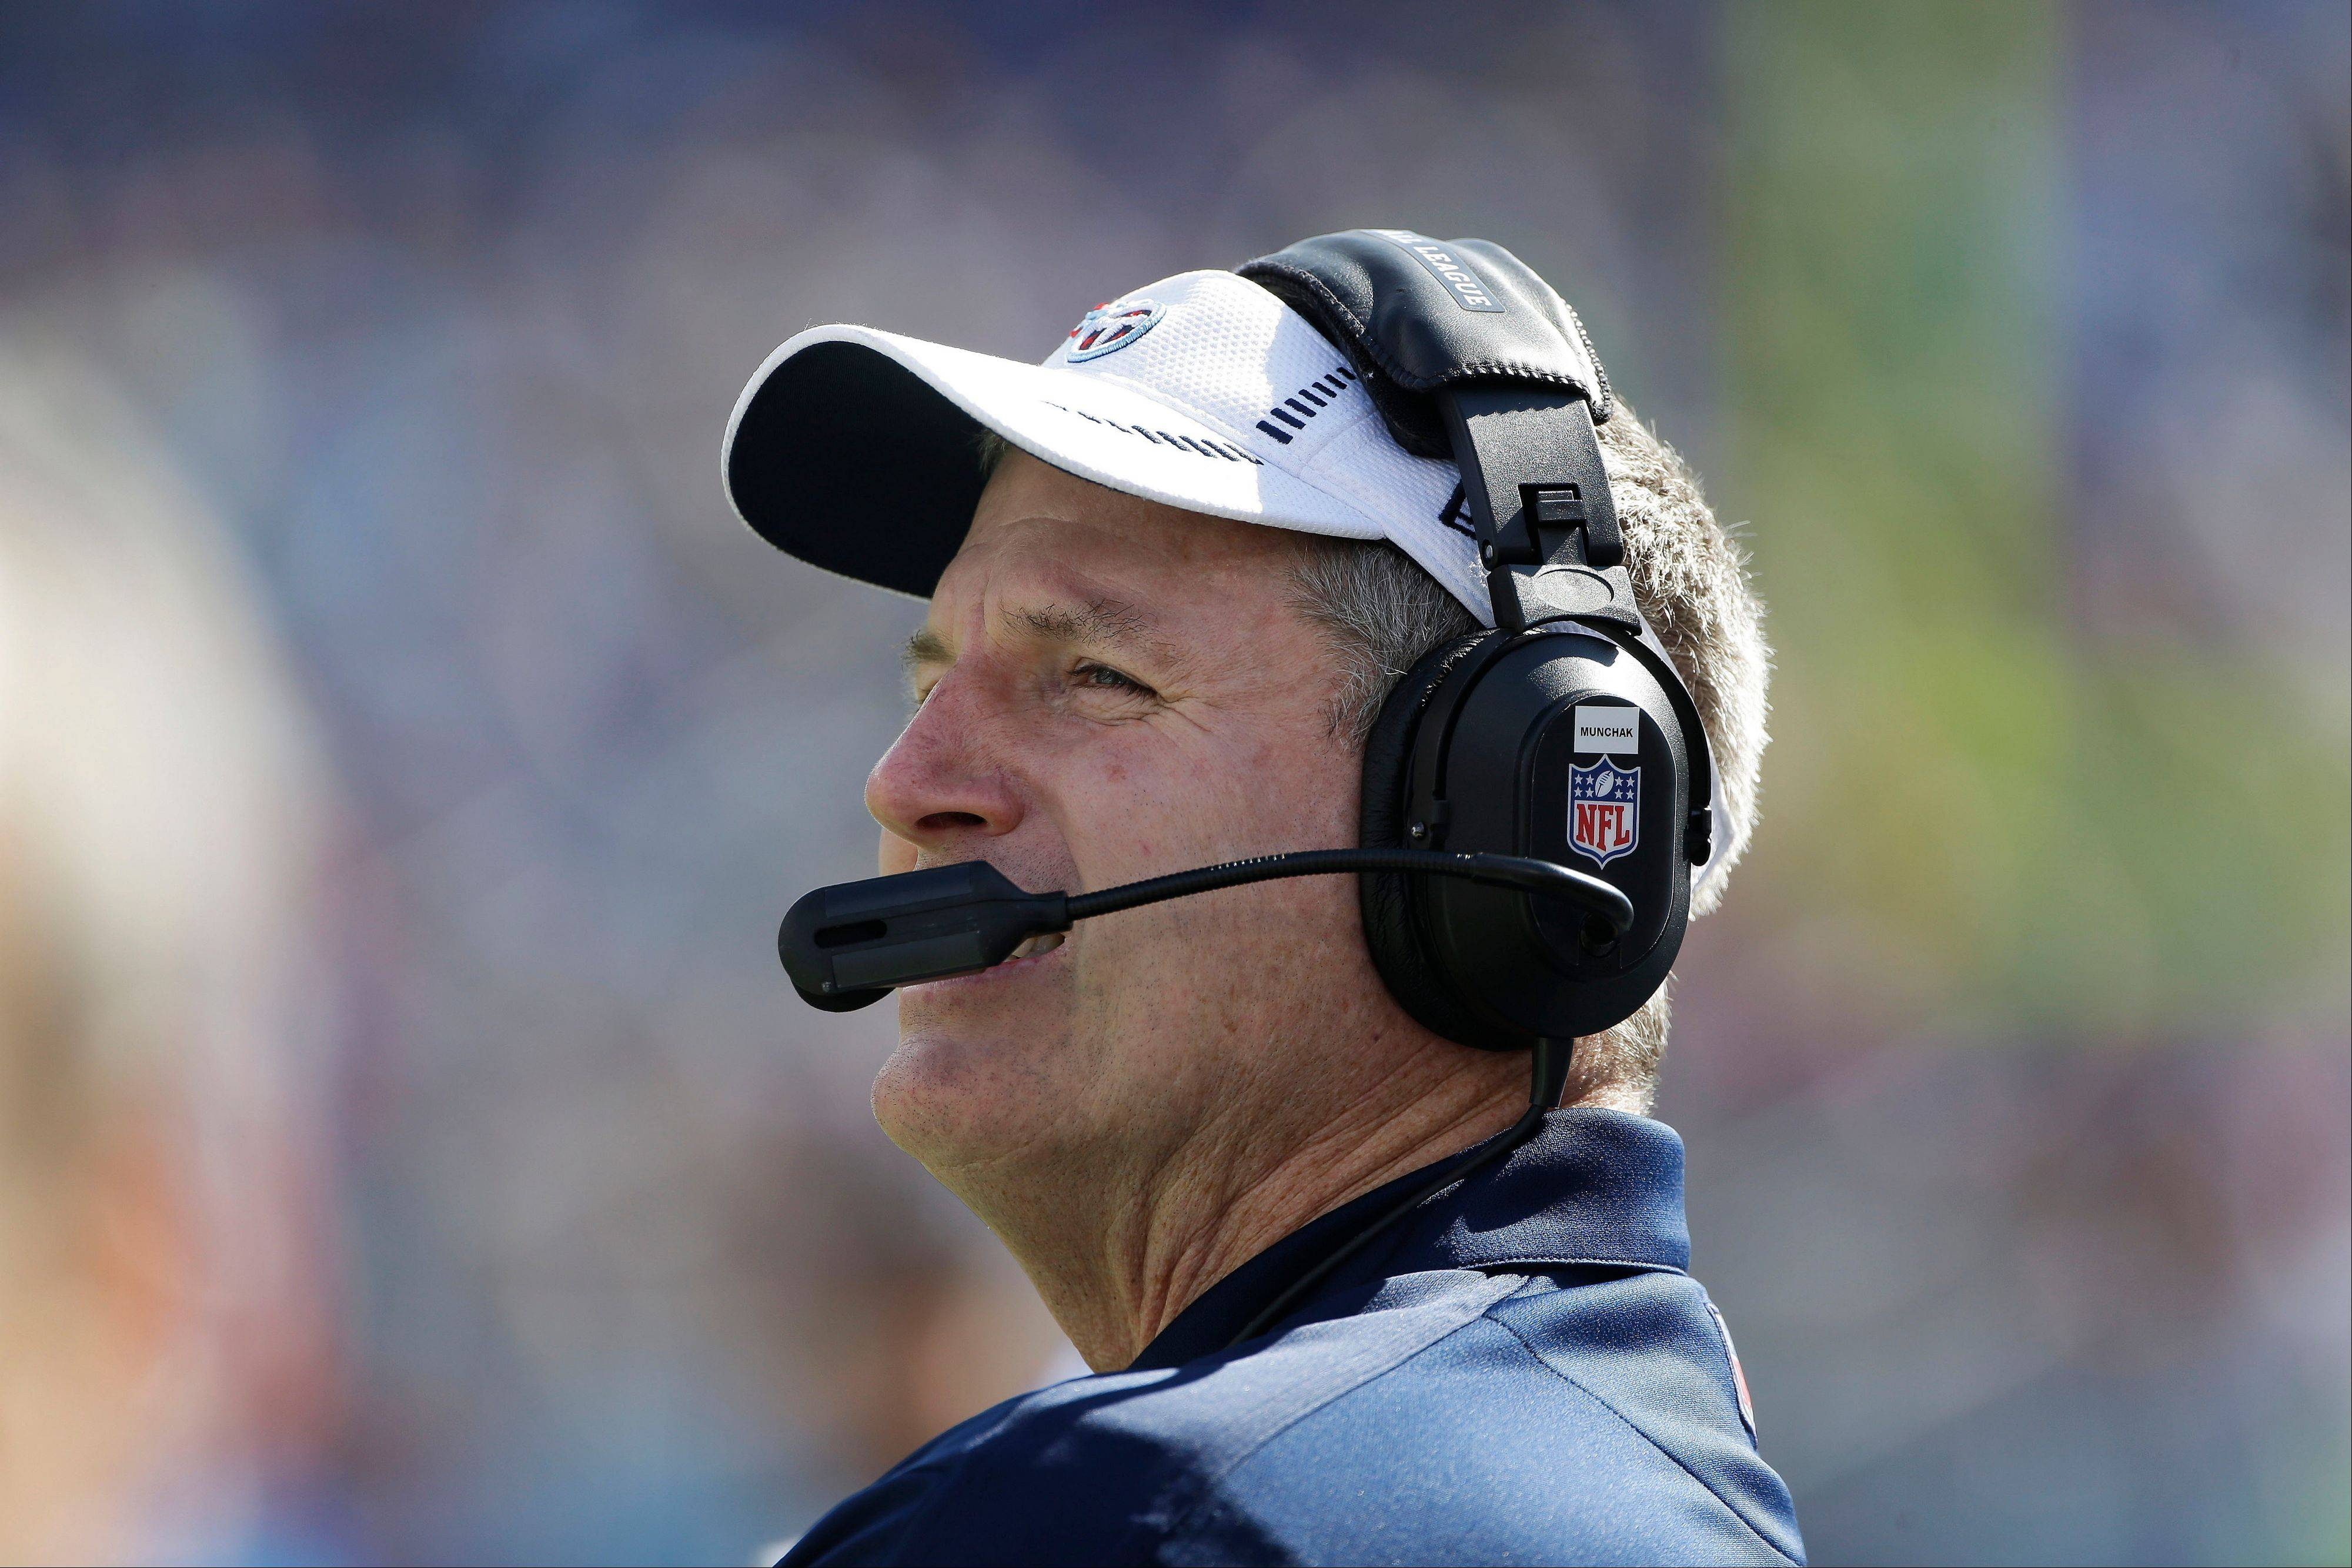 Tennessee Titans head coach Mike Munchak is hoping the Titans� banged up offensive line gets some help from tackle Michael Roos against the Bears this Sunday.